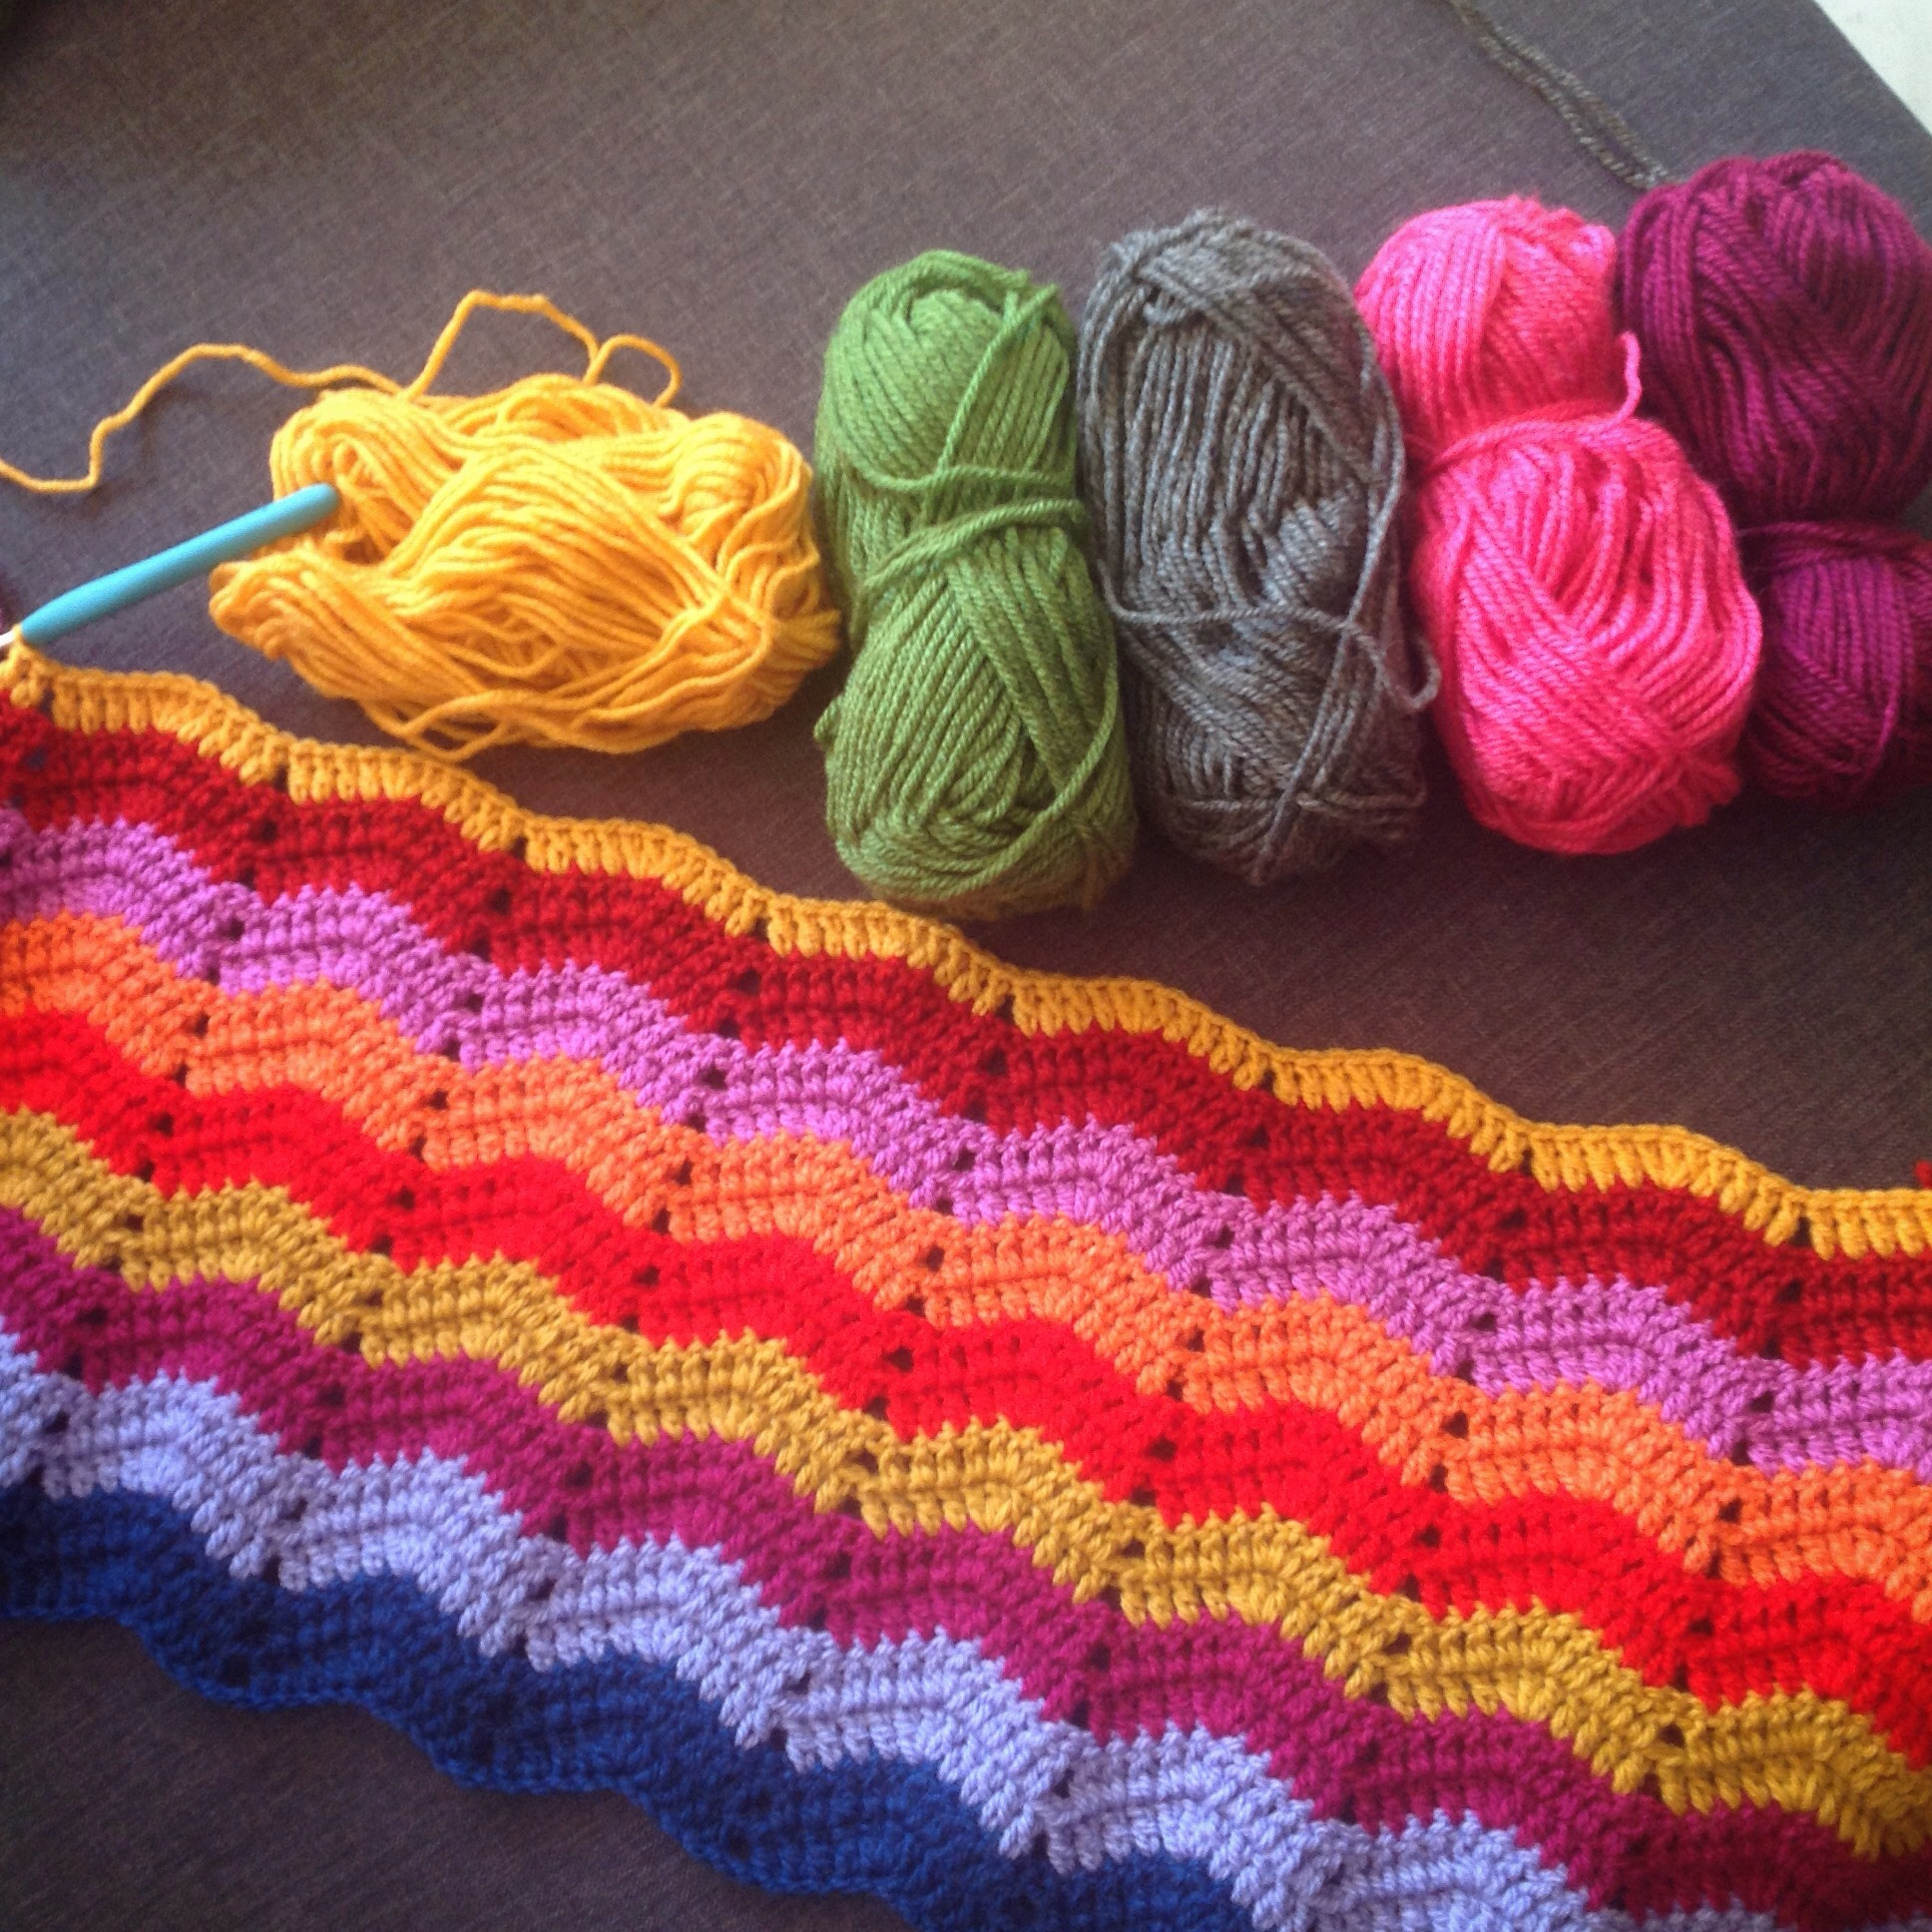 Some of the crochet I've done during these past weeks…